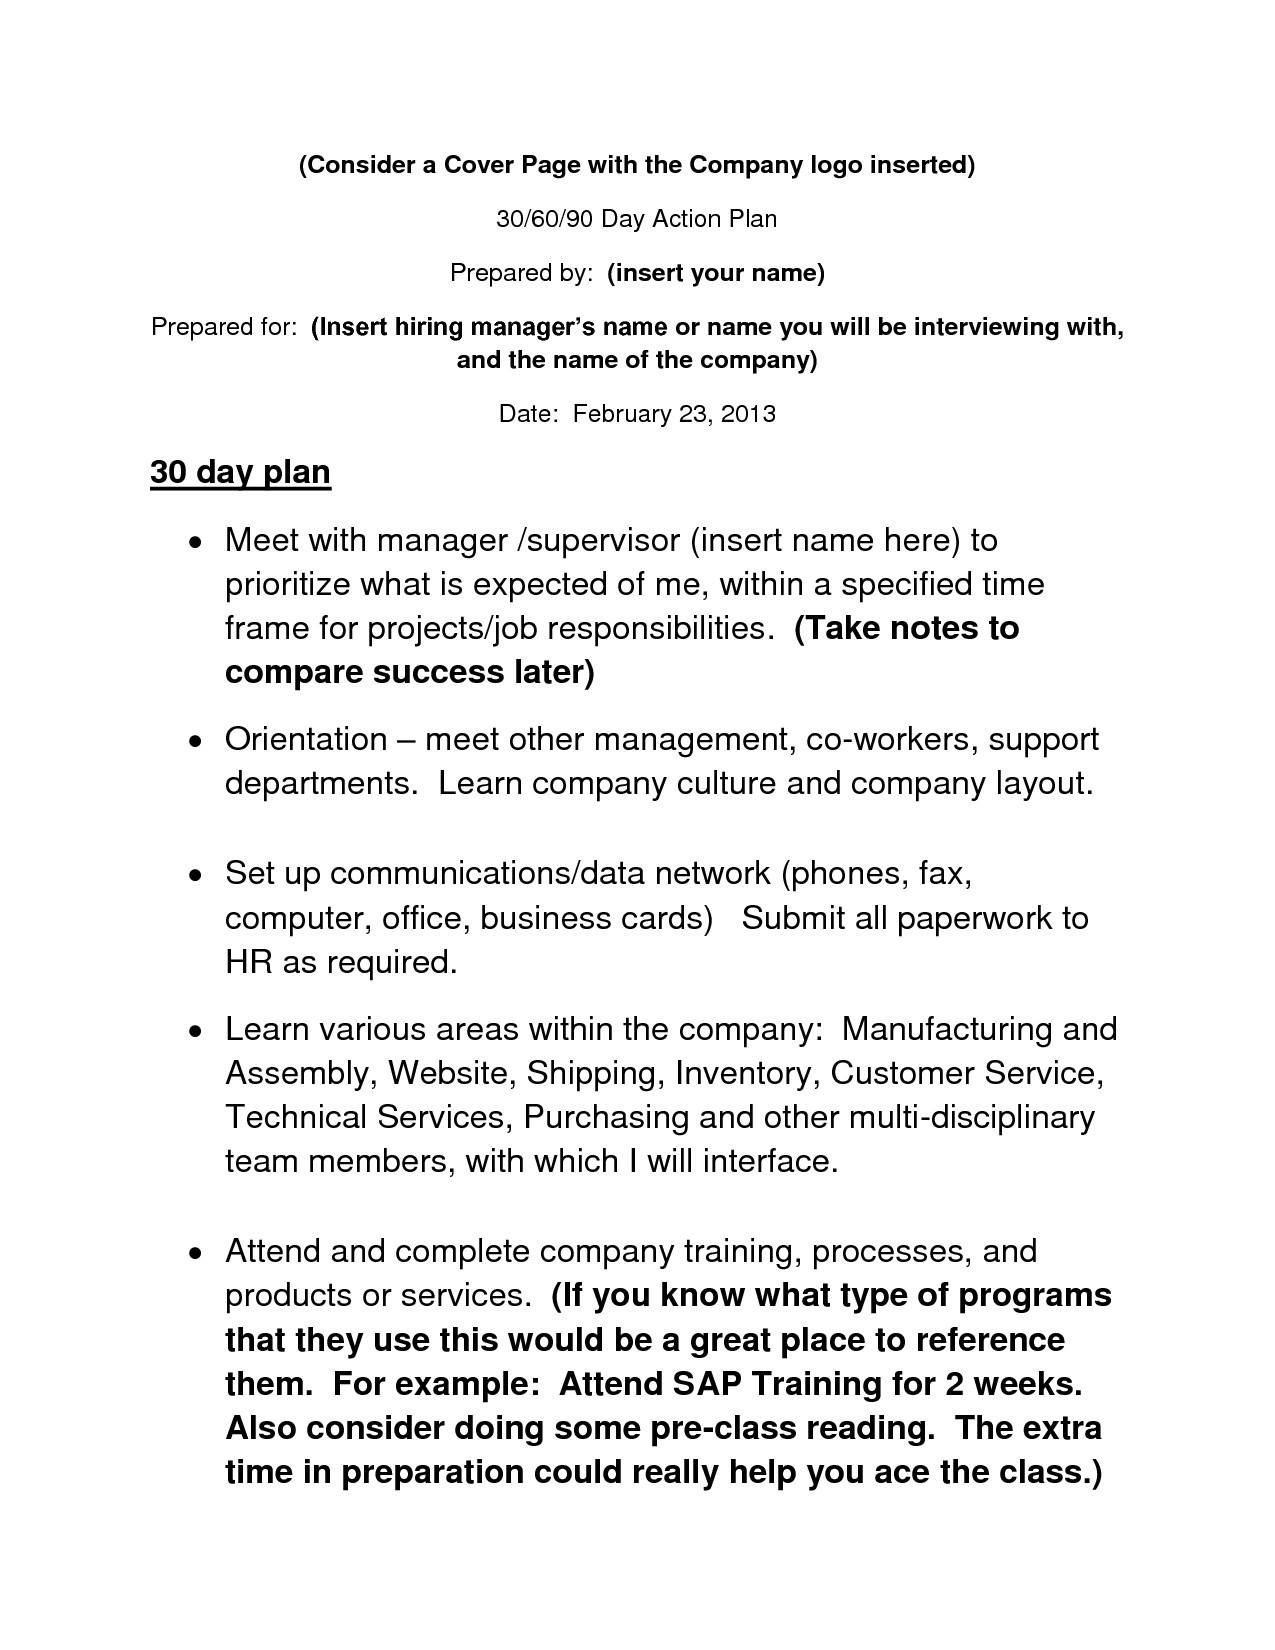 90 Day Business Plan Template 30 60 90 Day Action Plan Template Info